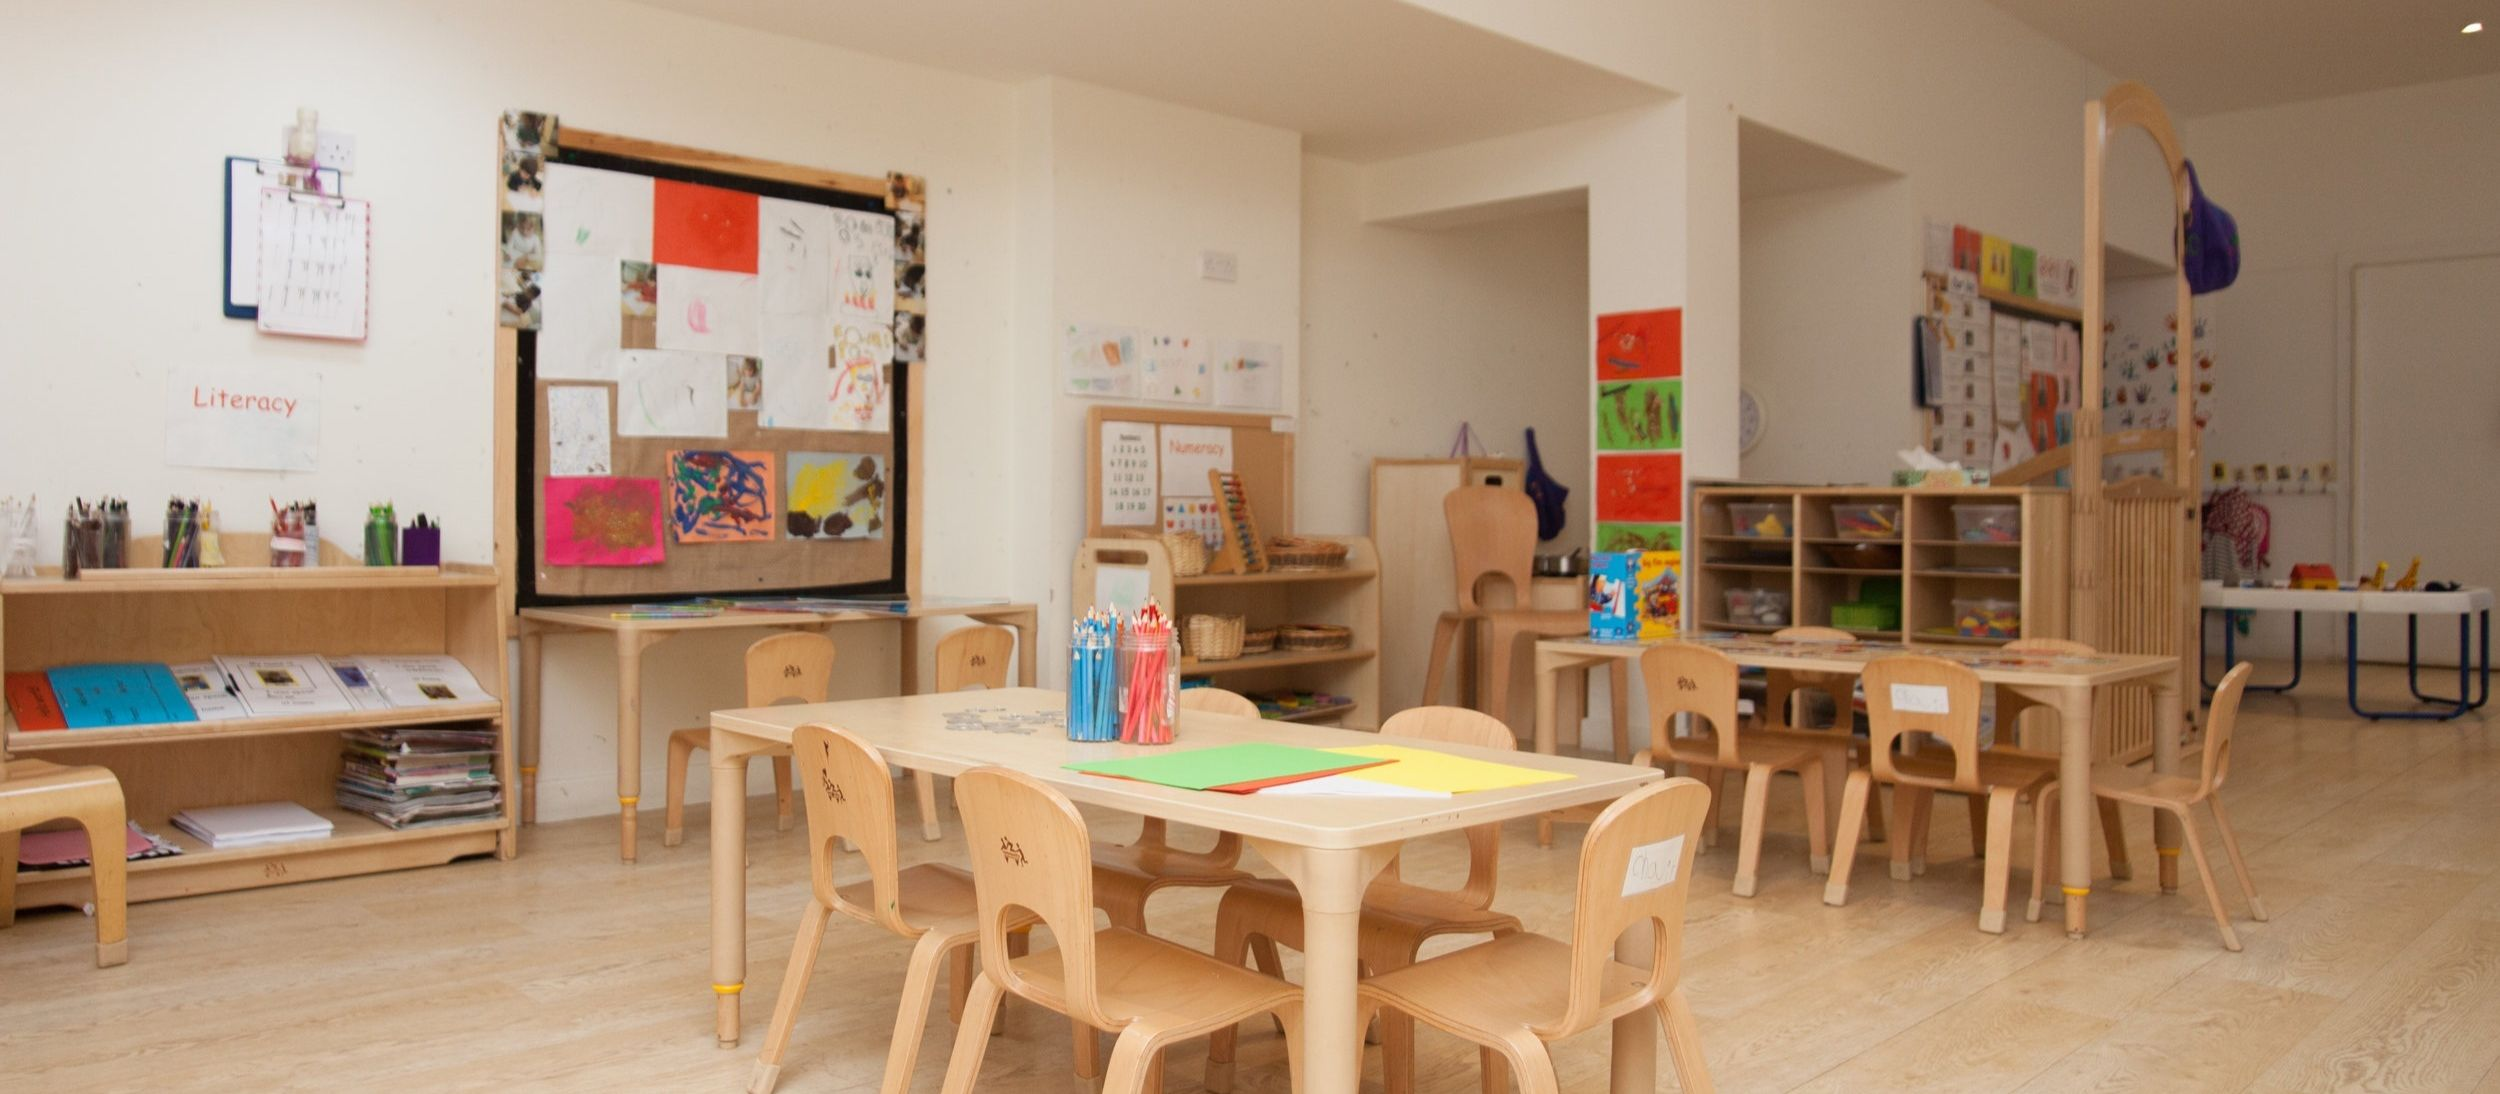 OUTSTANDING DAY NURSERY IN HANWELL